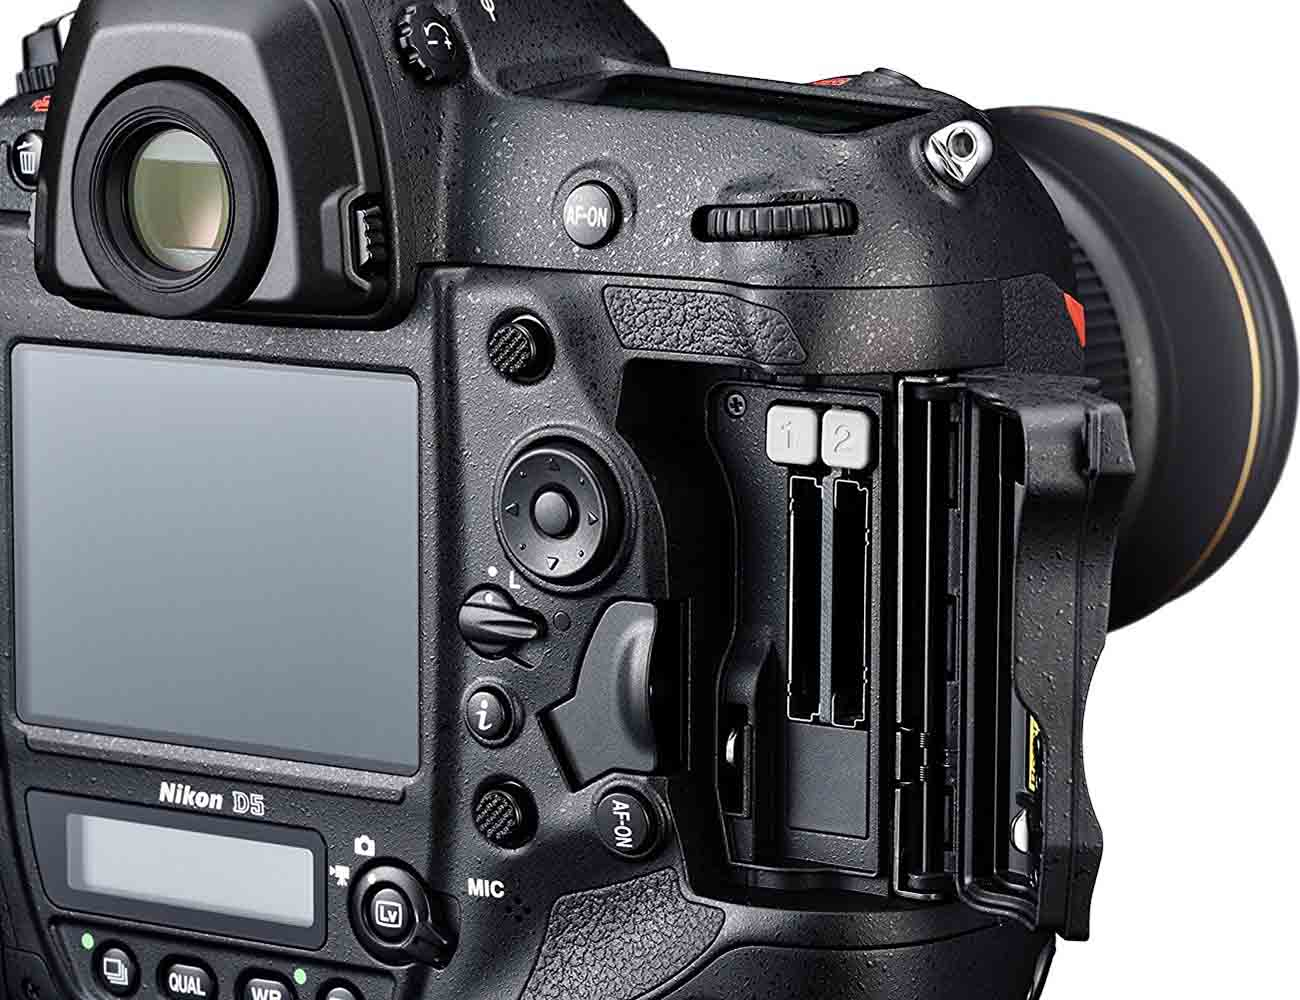 Nikon D5 – FX-format DSLR With Masterful Image Quality